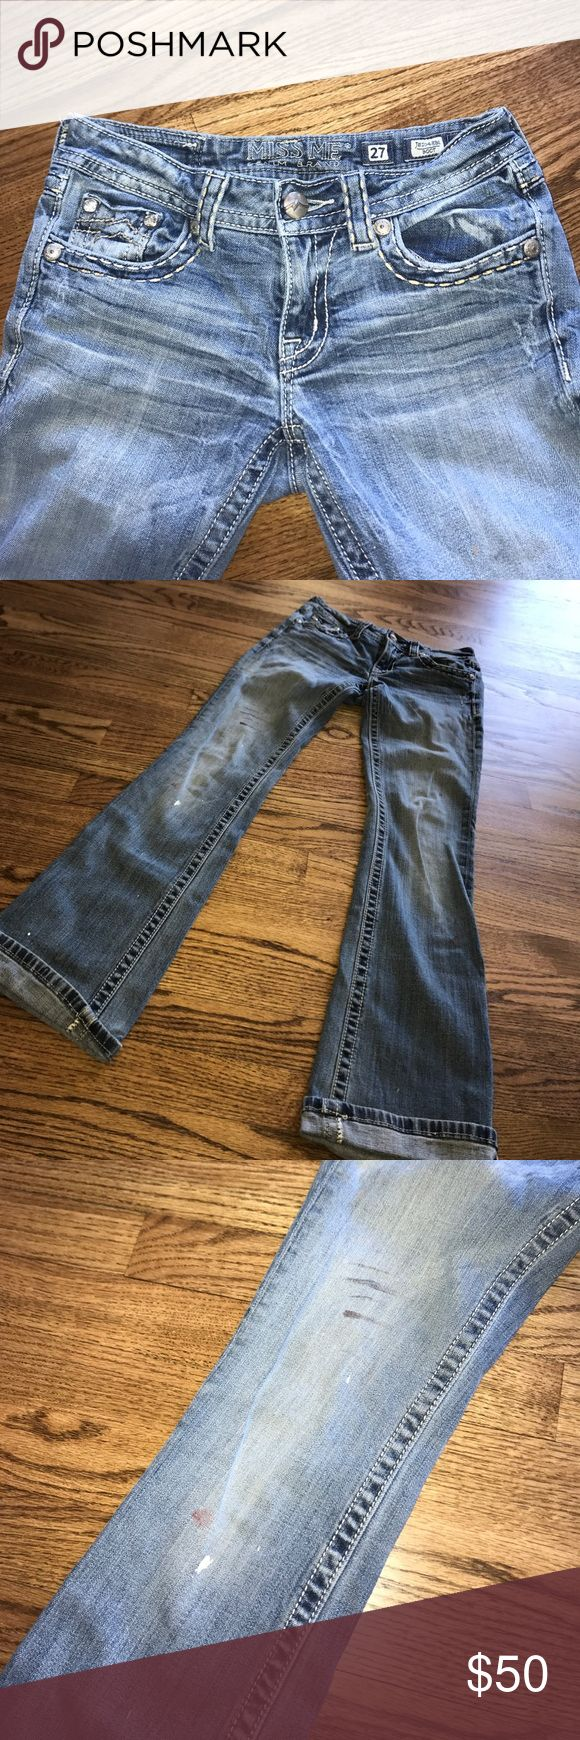 Distressed Miss Me jeans Used, has paint stains on front. Perfect for a distressed look. Not missing any jewels or buttons! Size 27. Miss Me brand Miss Me Jeans Boot Cut